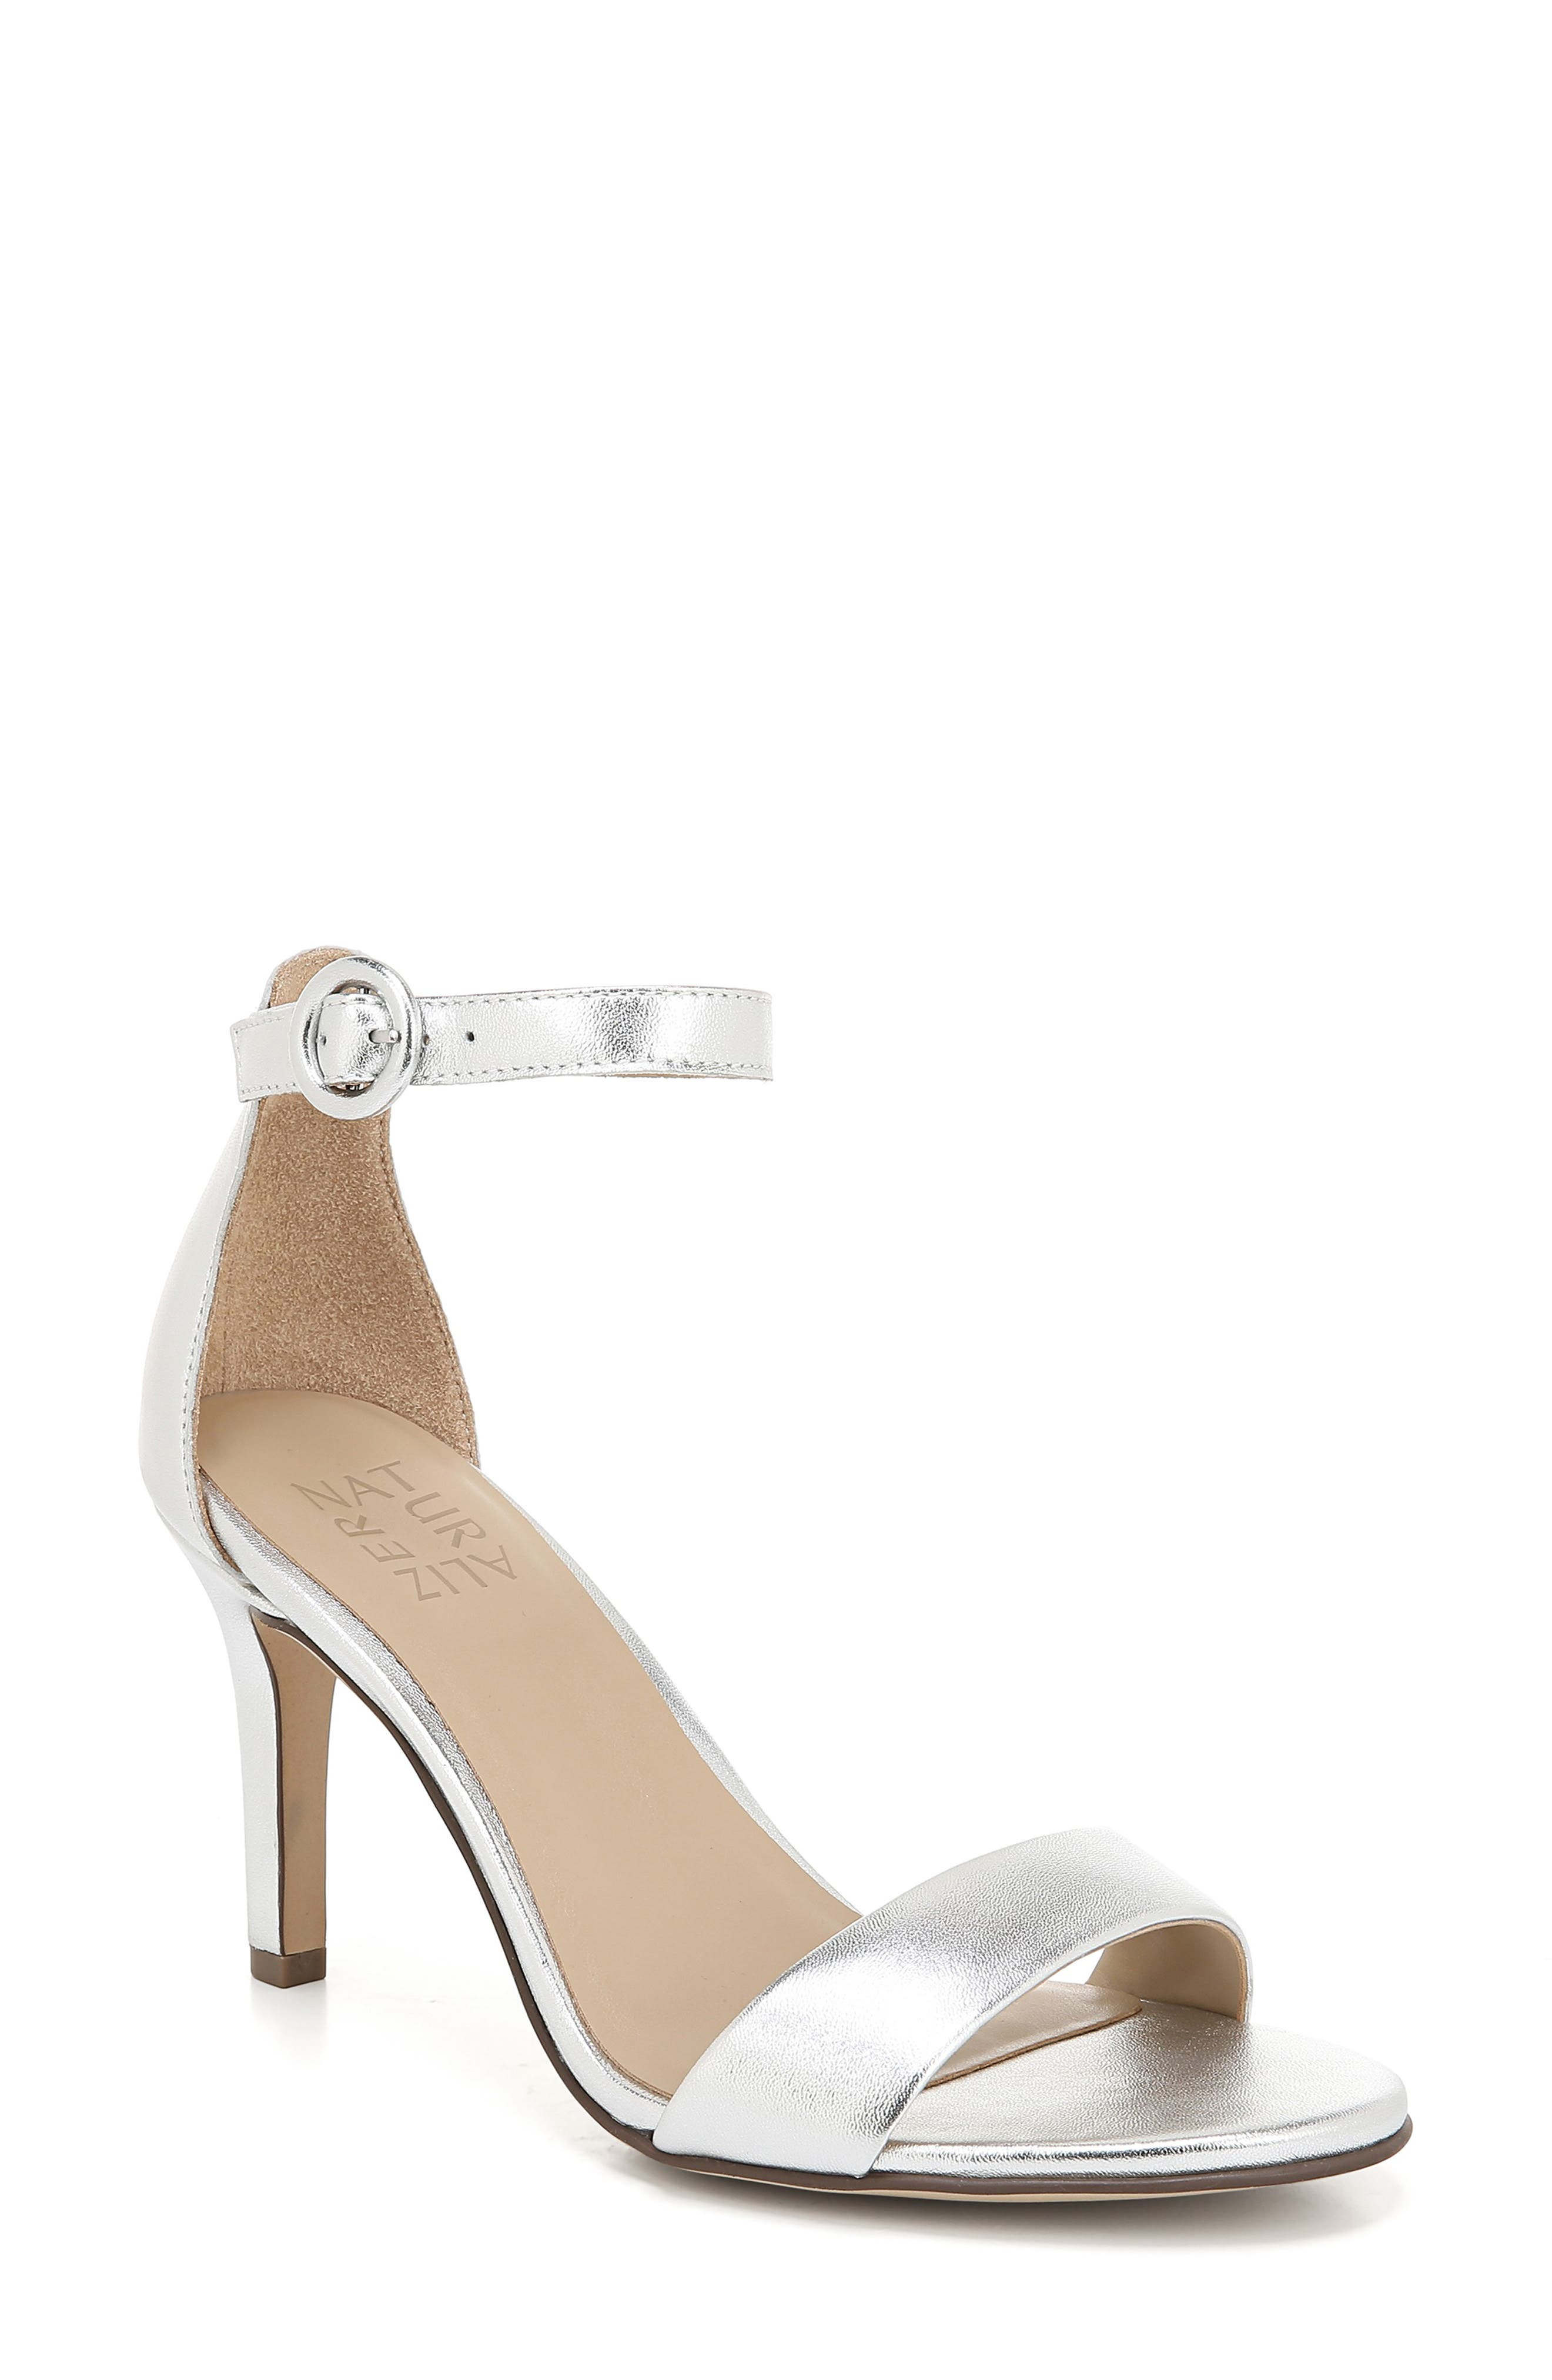 NATURALIZER Kinsley Ankle Strap Sandal, Main, color, SILVER METALLIC LEATHER